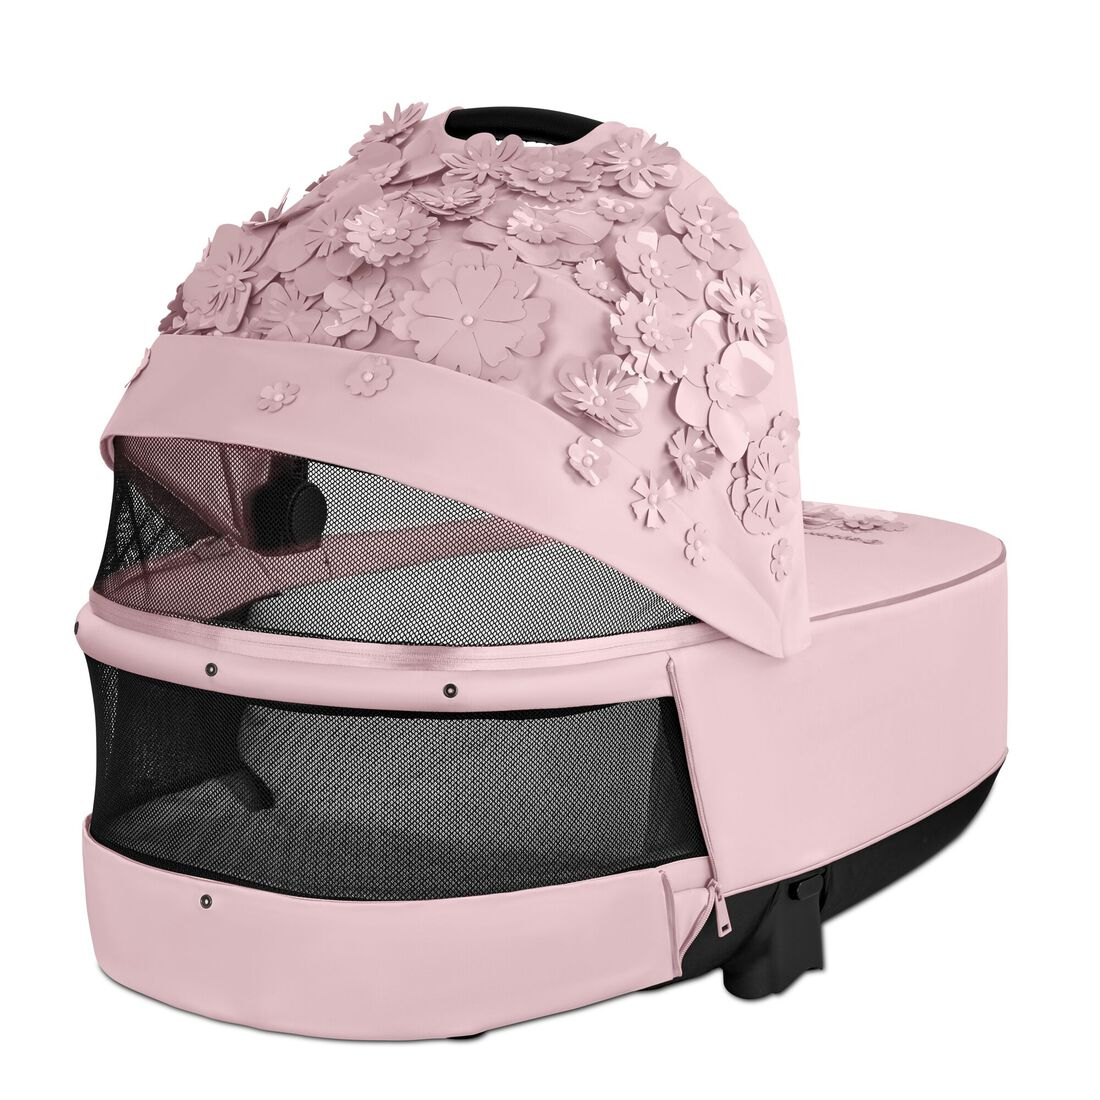 CYBEX Priam Lux Carry Cot - Pale Blush in Pale Blush large image number 4